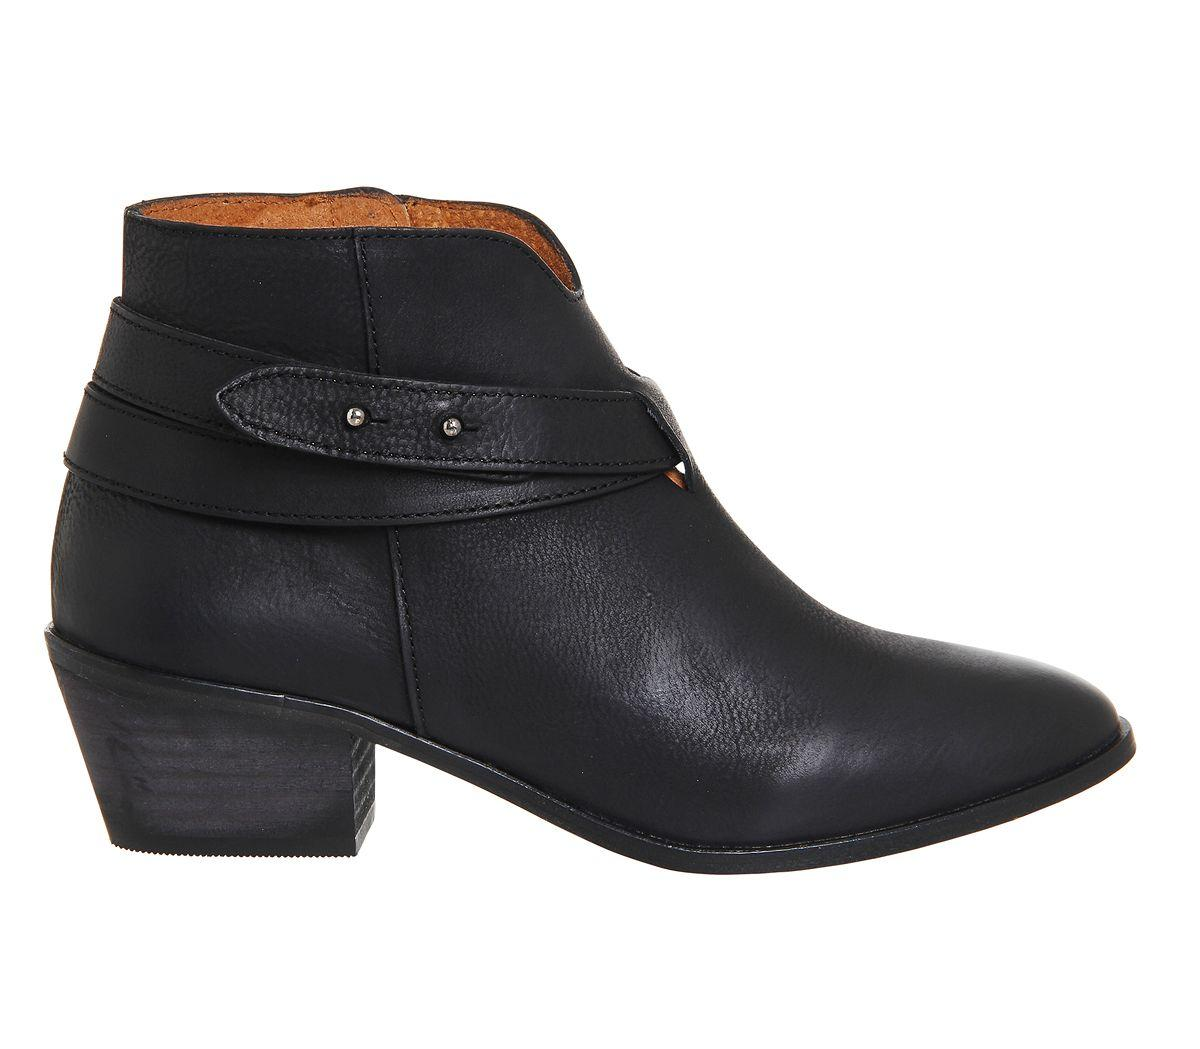 Office Leather Loyal Strap Detail Boots in Black Leather (Black)